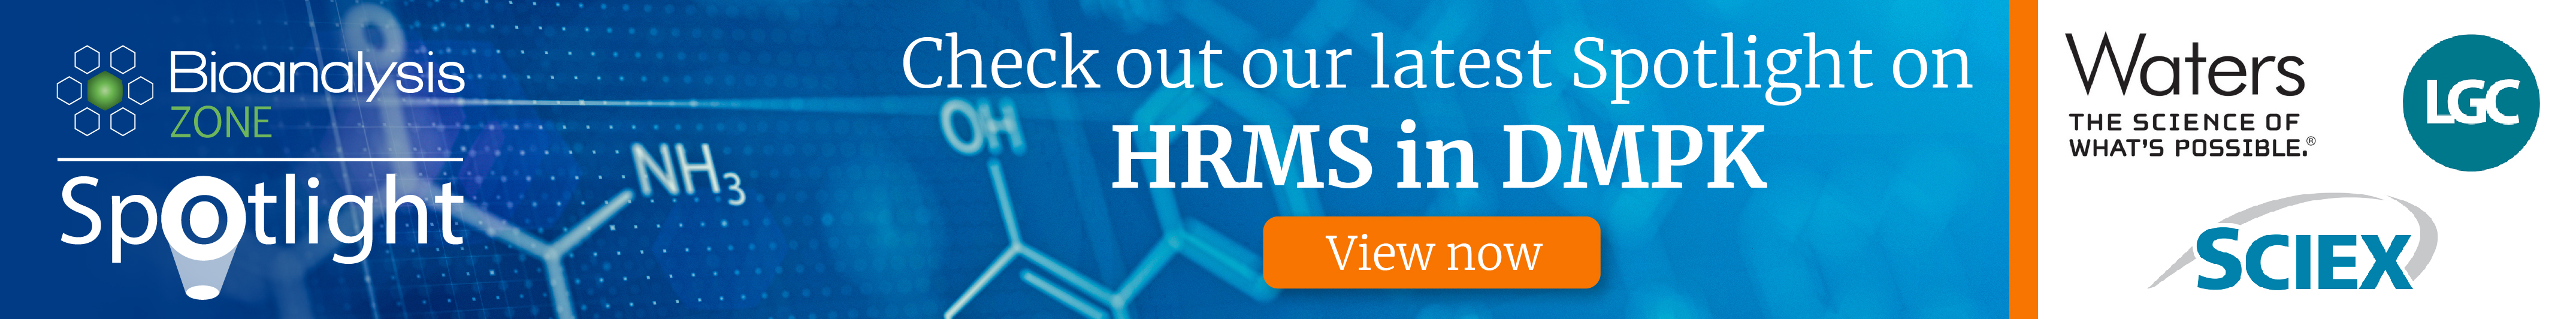 HRMS in DMPK banner